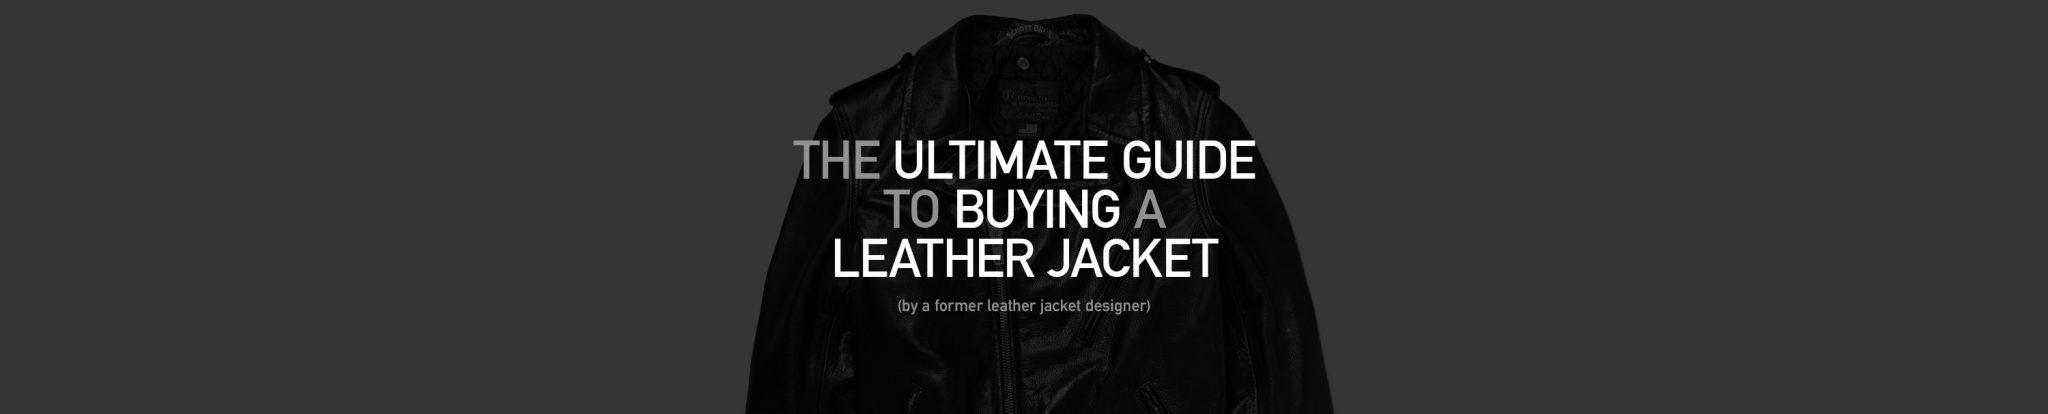 Recondition Leather Jacket Caffection